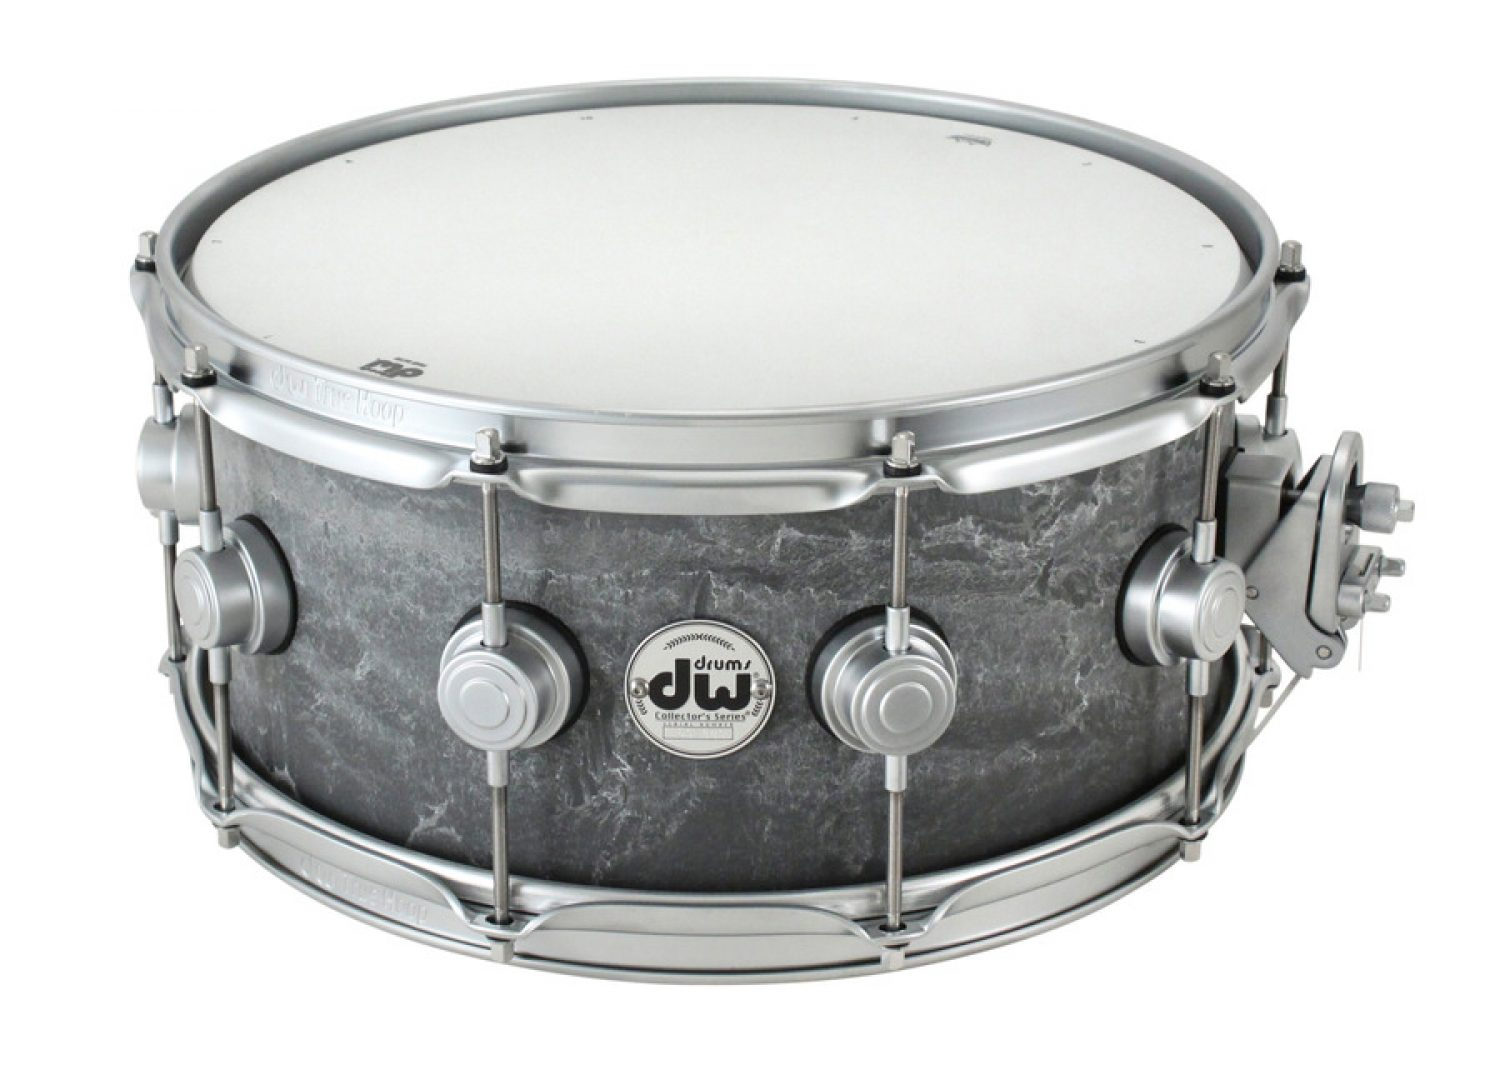 dw concrete snare drum all things gear. Black Bedroom Furniture Sets. Home Design Ideas